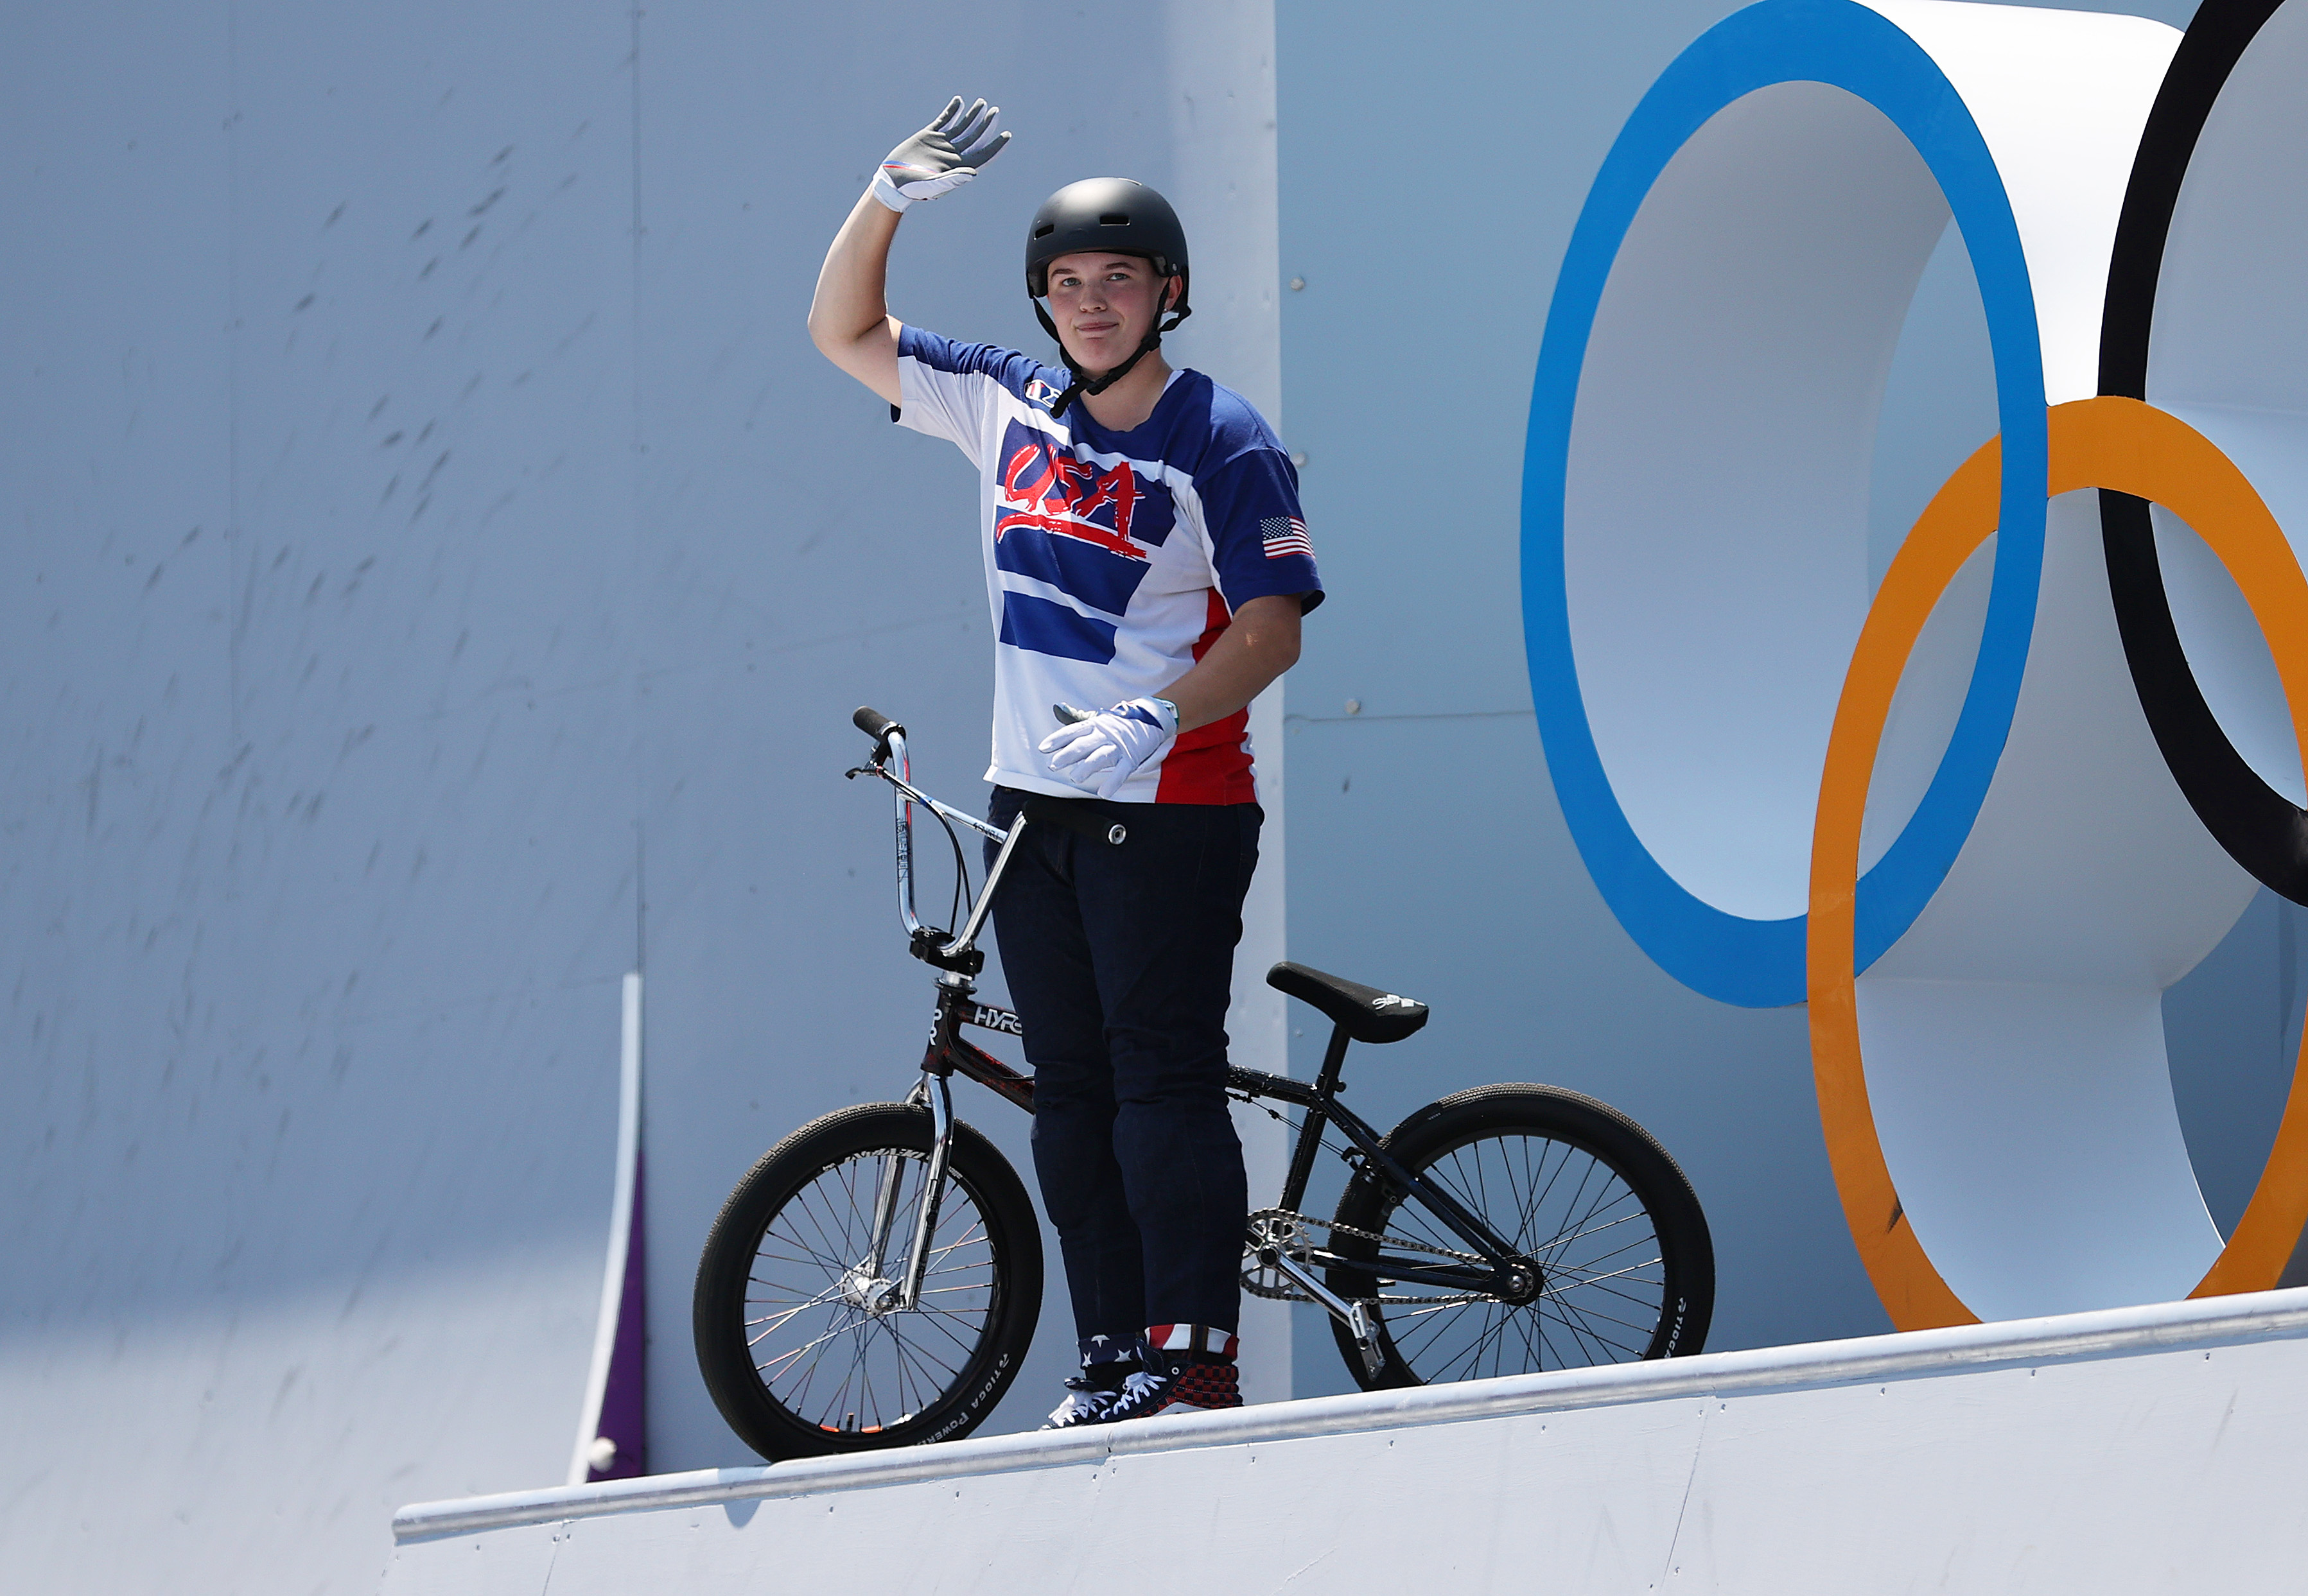 Cycling - BMX Freestyle - Olympics: Day 9